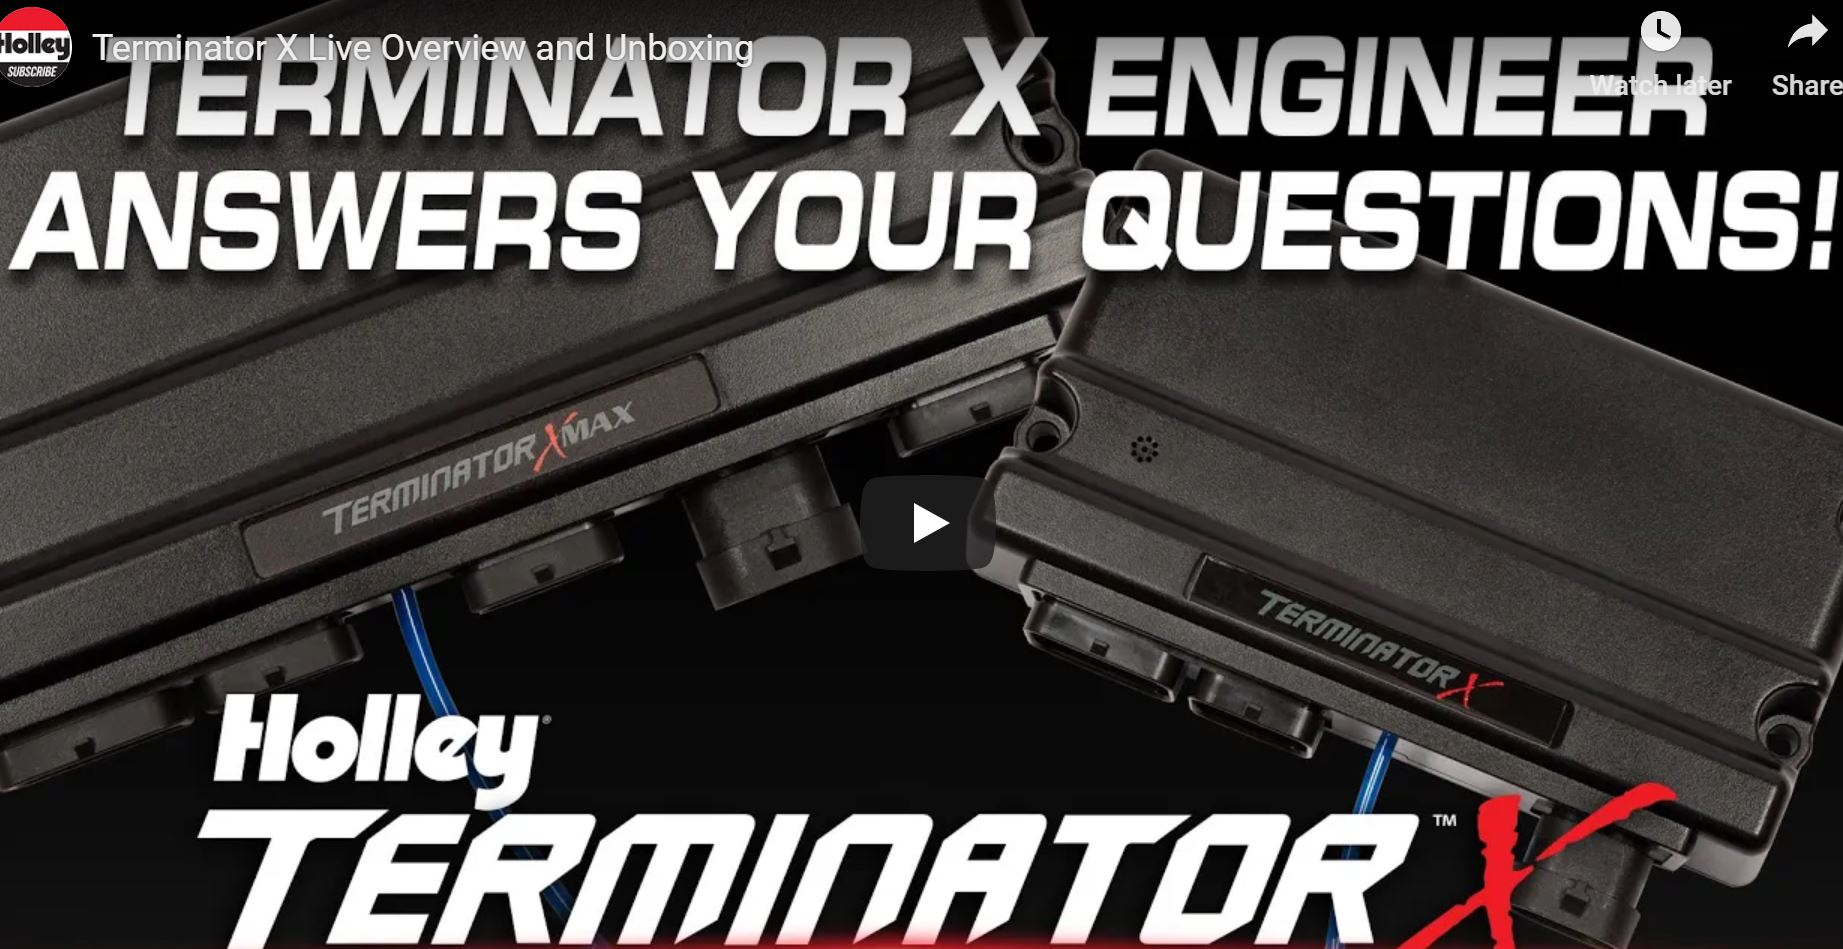 Holley's New Terminator Max LS Fuel Injection System Is Awesome And Affordable. Watch This To Learn All About It!